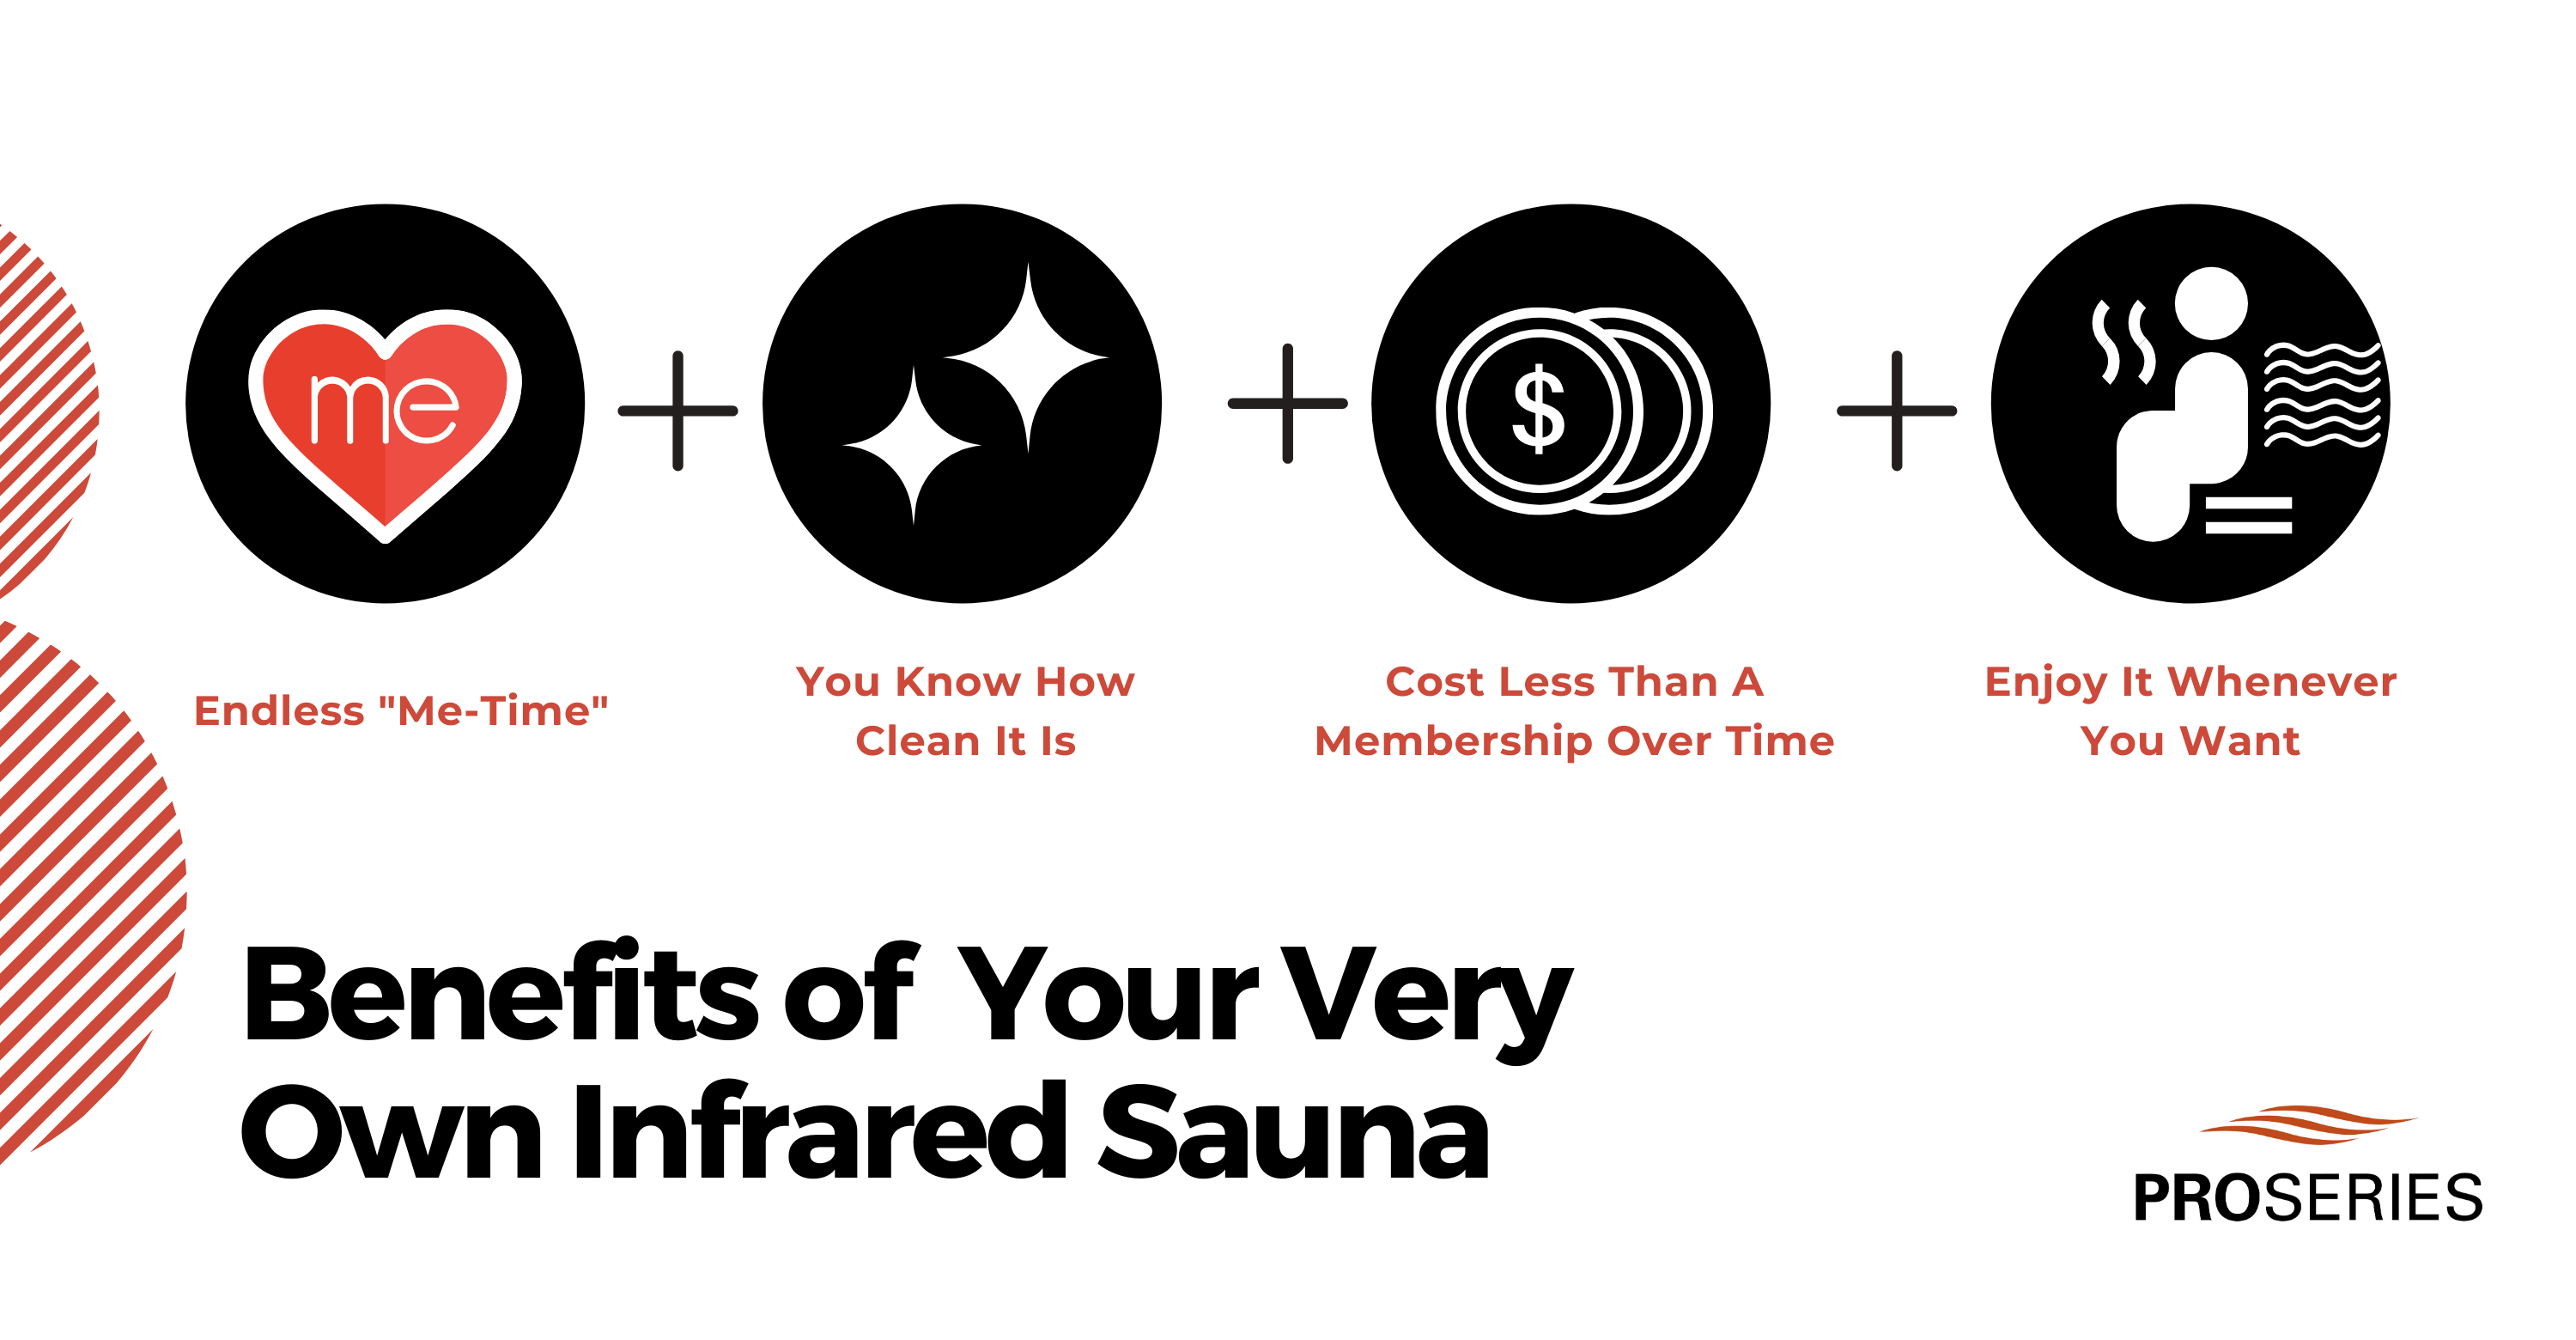 "Benefits of your very own infrared sauna: Endless ""Me-Time"", You know how clean it it, cost less than a membership over time, enjoy it whenever you want"